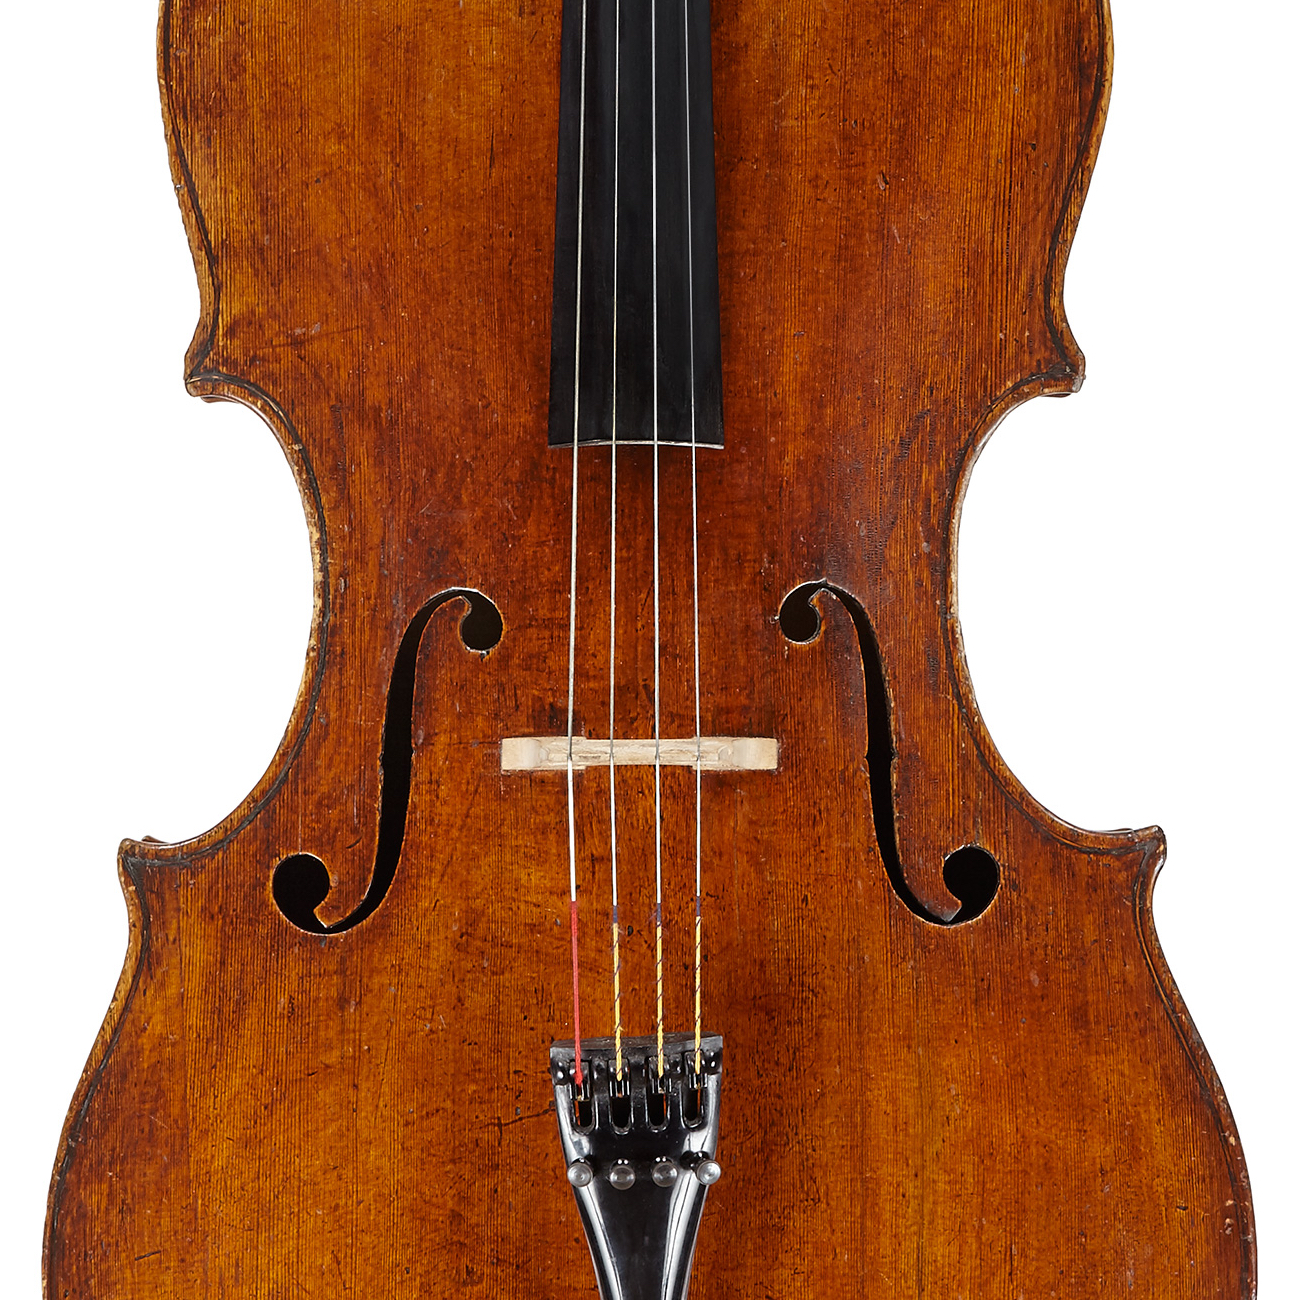 Cappa cello